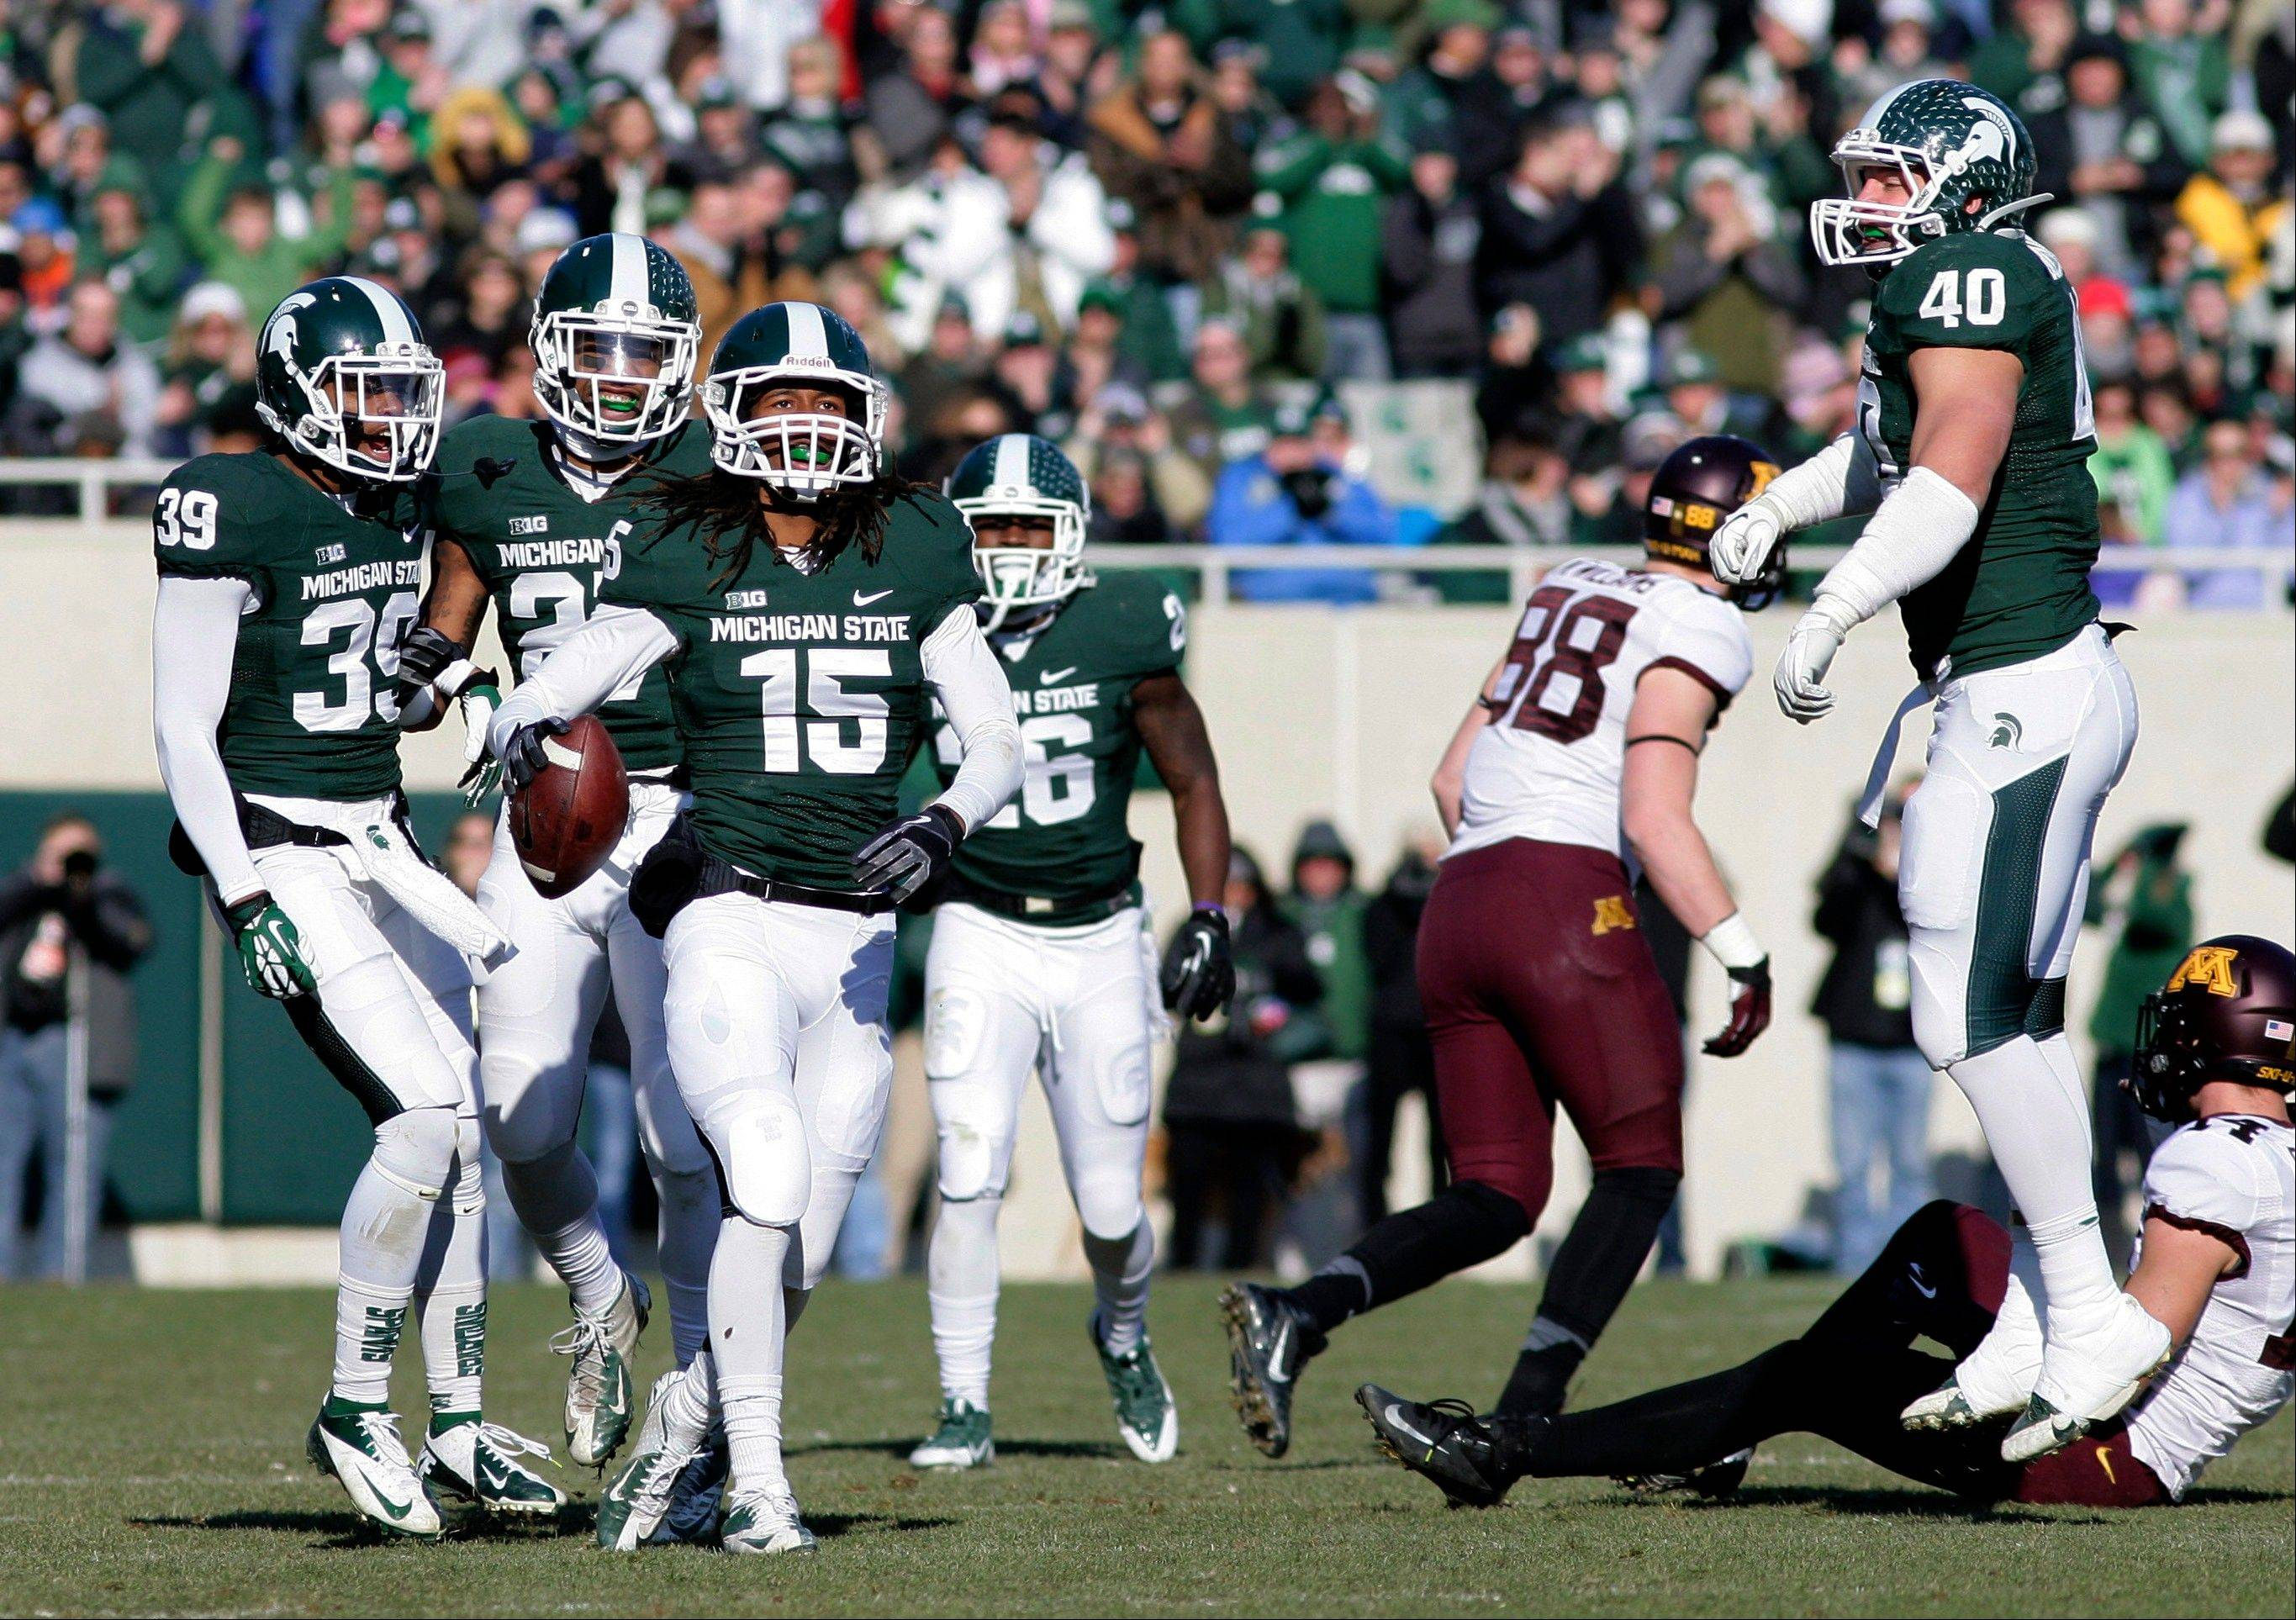 Michigan State players, including Jermaine Edmondson (39), Kurtis Drummond, Trae Waynes (15), R.J. Williamson (26) and Max Bullough (40), celebrate Waynes' interception against Minnesota during the second quarter of an NCAA college football game, Saturday, Nov. 30, 2013, in East Lansing, Mich.